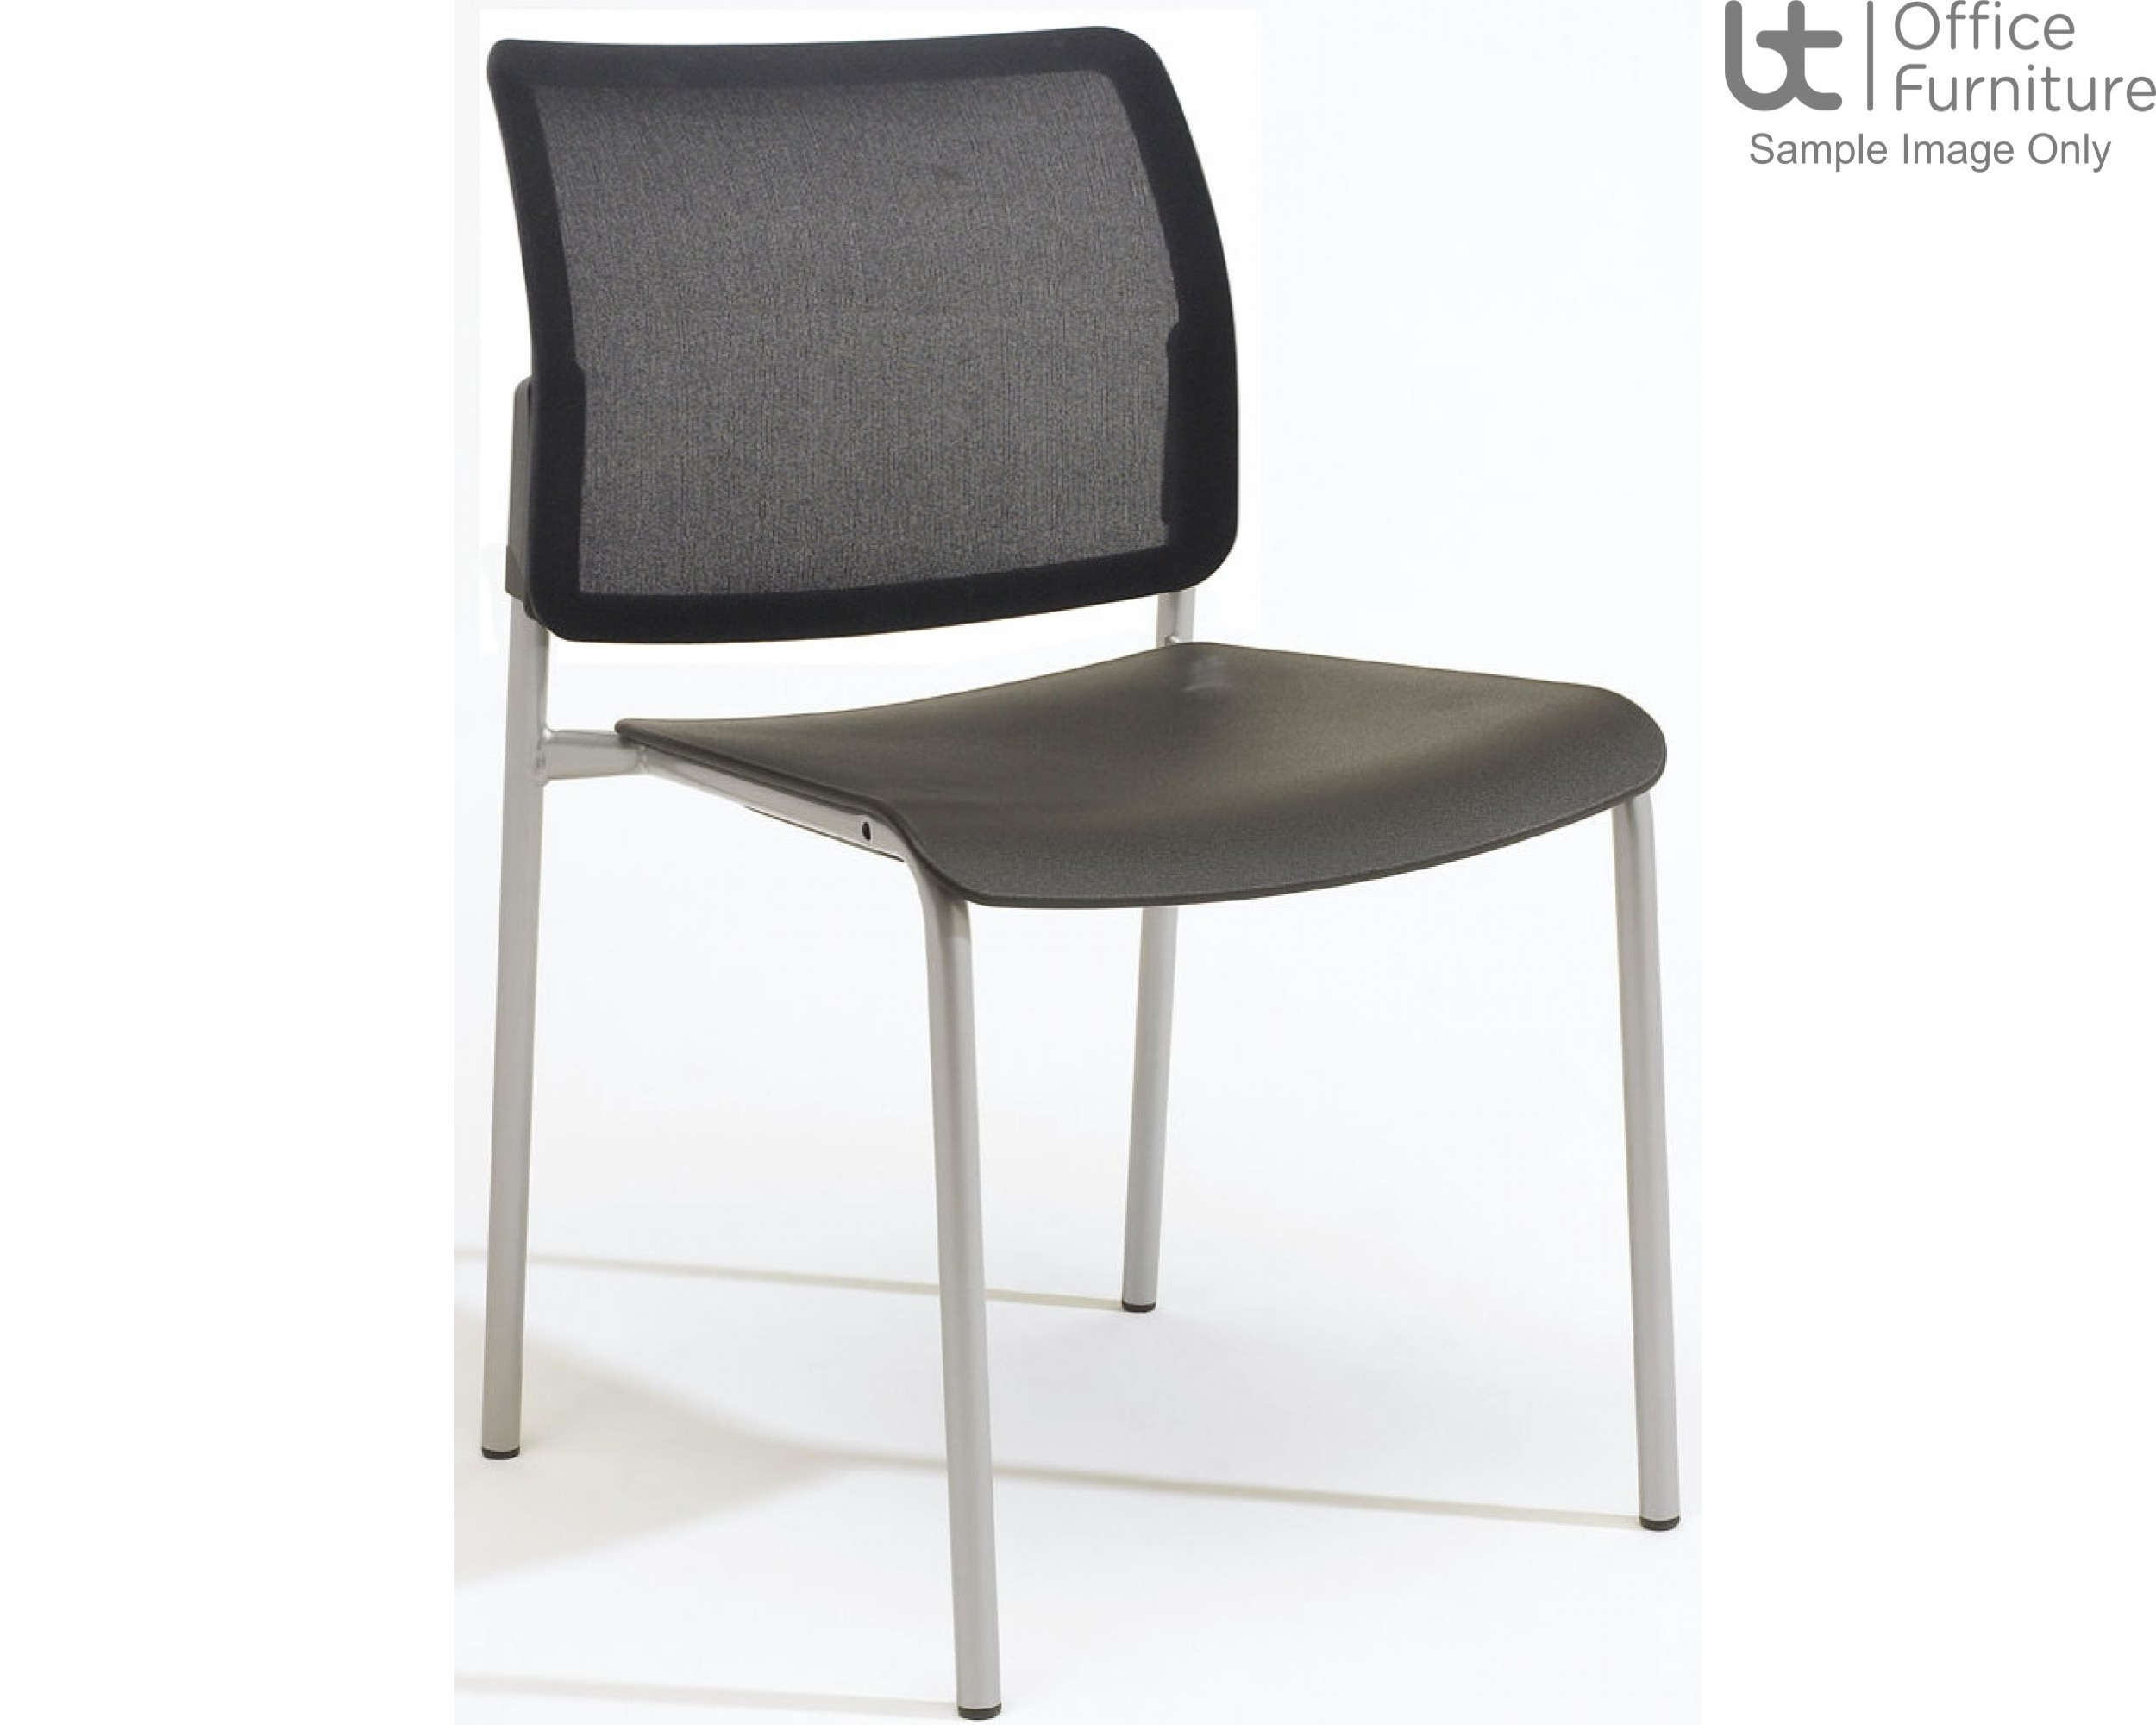 Verco Visitor / Conference Seating - Add 4 legged Mesh Back Plastic Stacking Chair